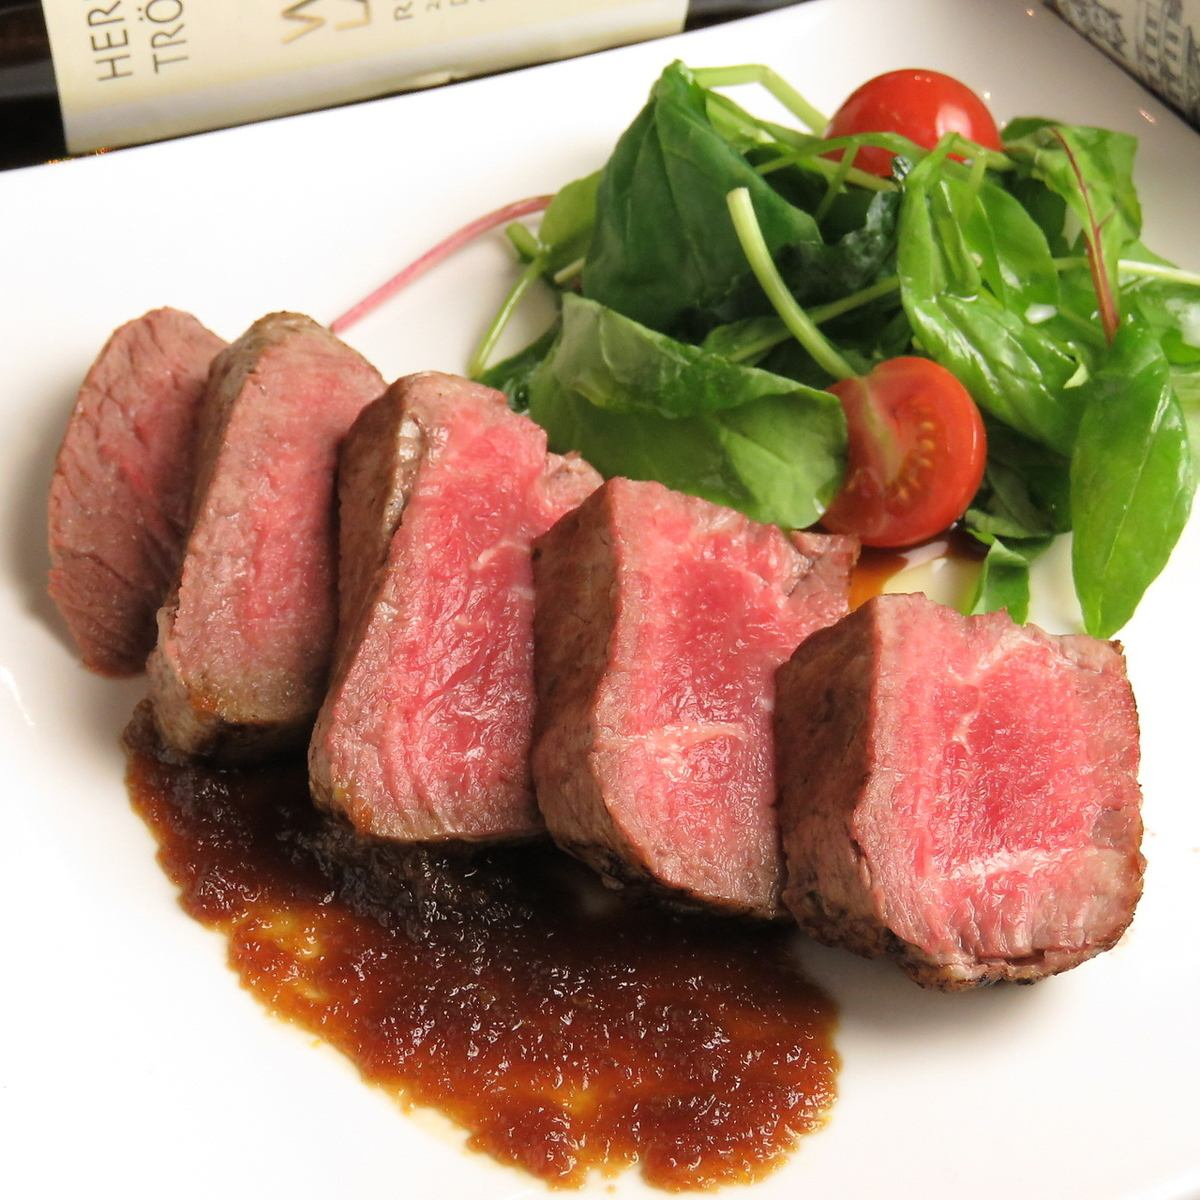 Various luxury lunches including Guernica steak (150 g) 1680 yen available